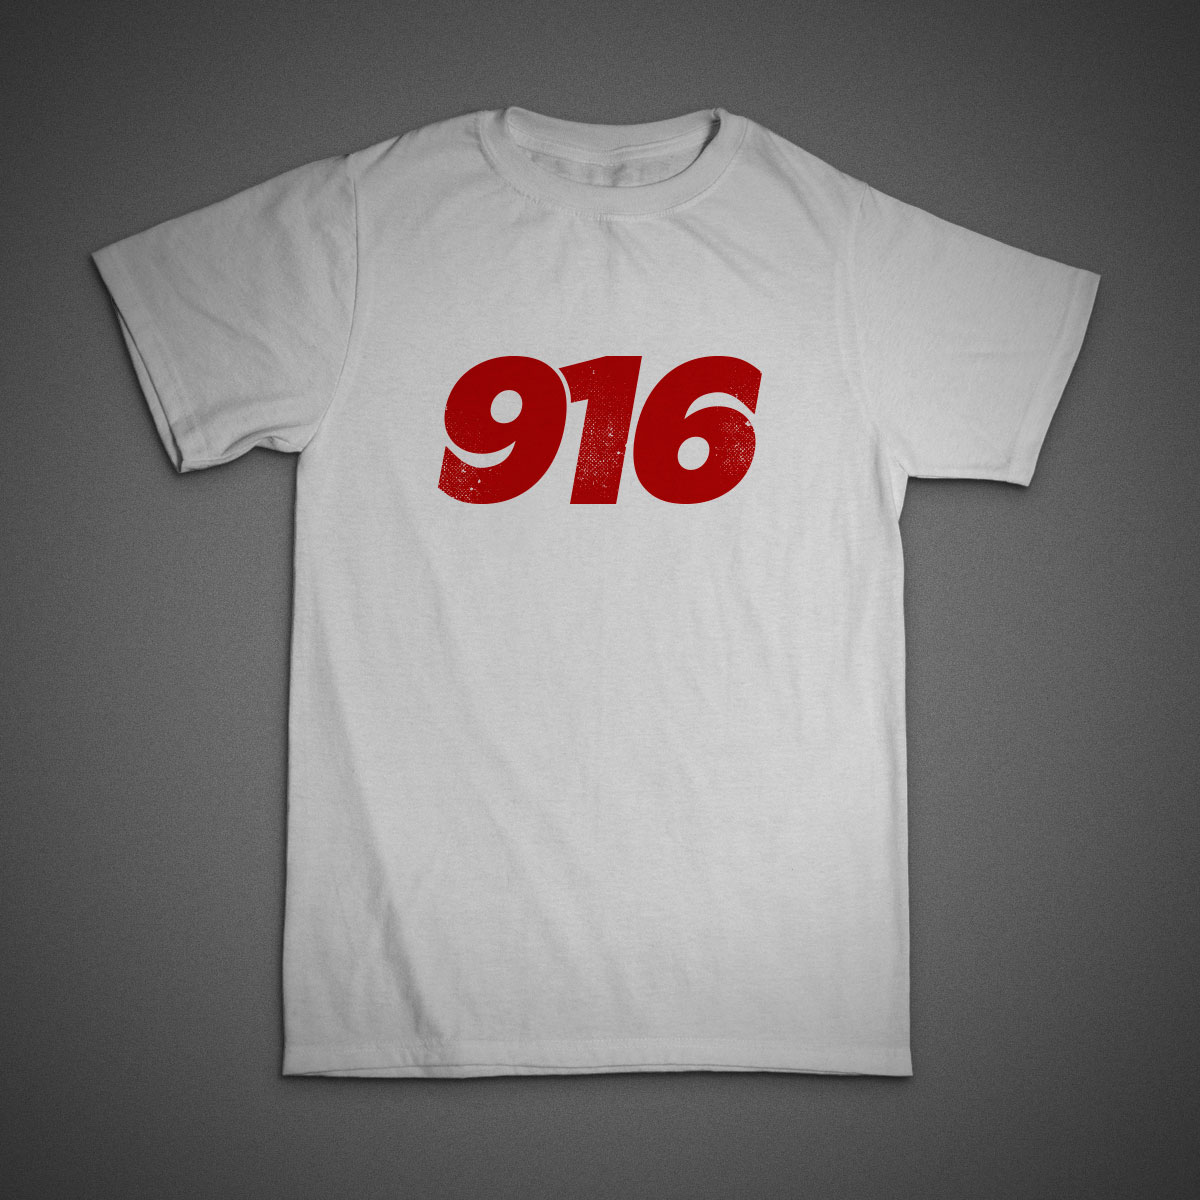 916_white_front